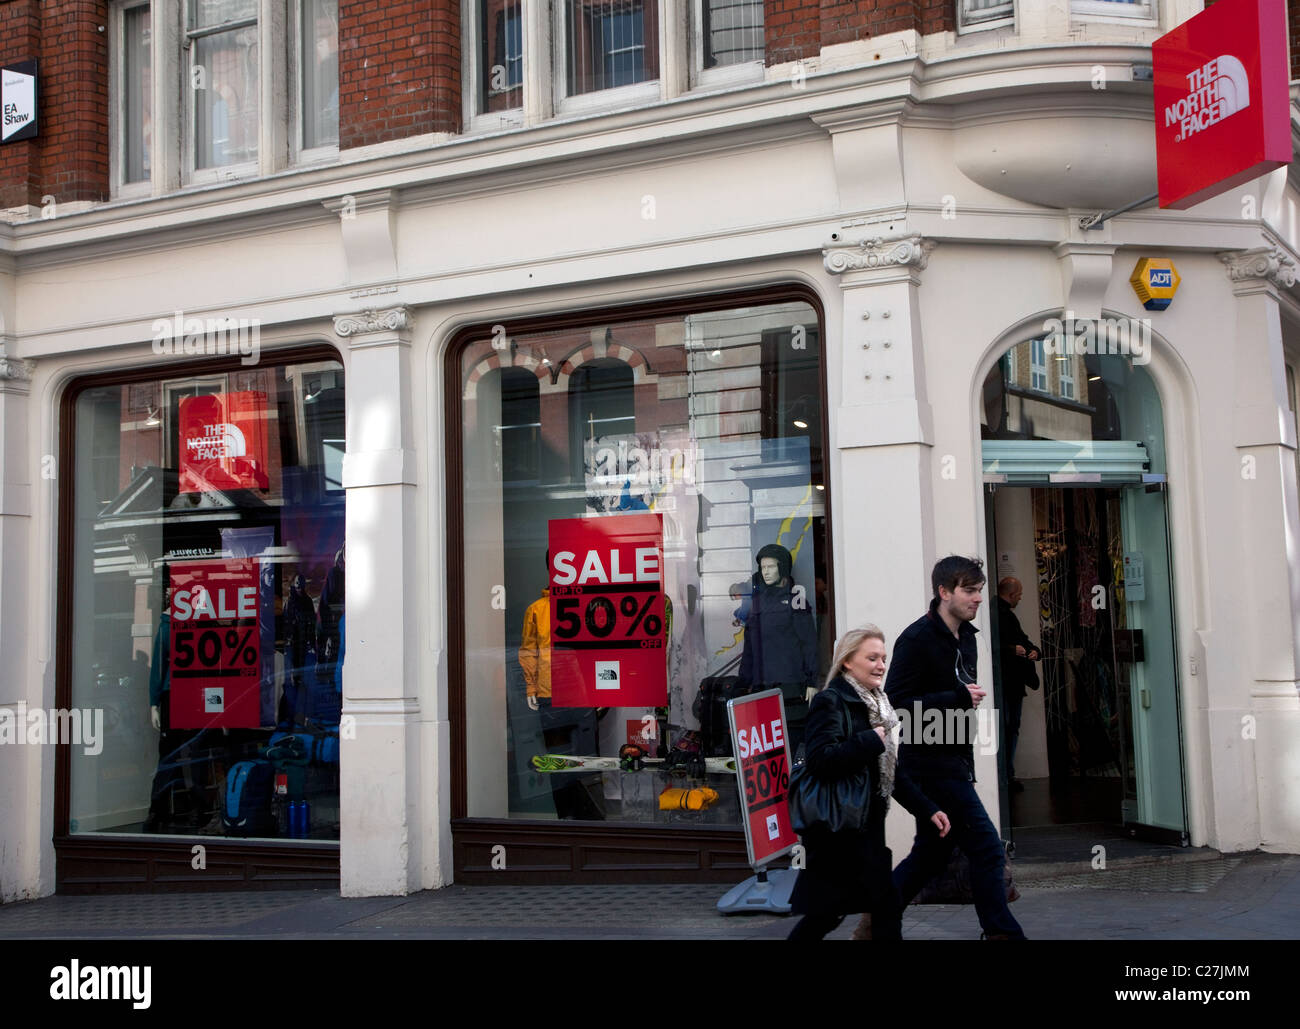 a1bfe11d0 Branch of The North Face outdoor clothing store, London Stock Photo ...